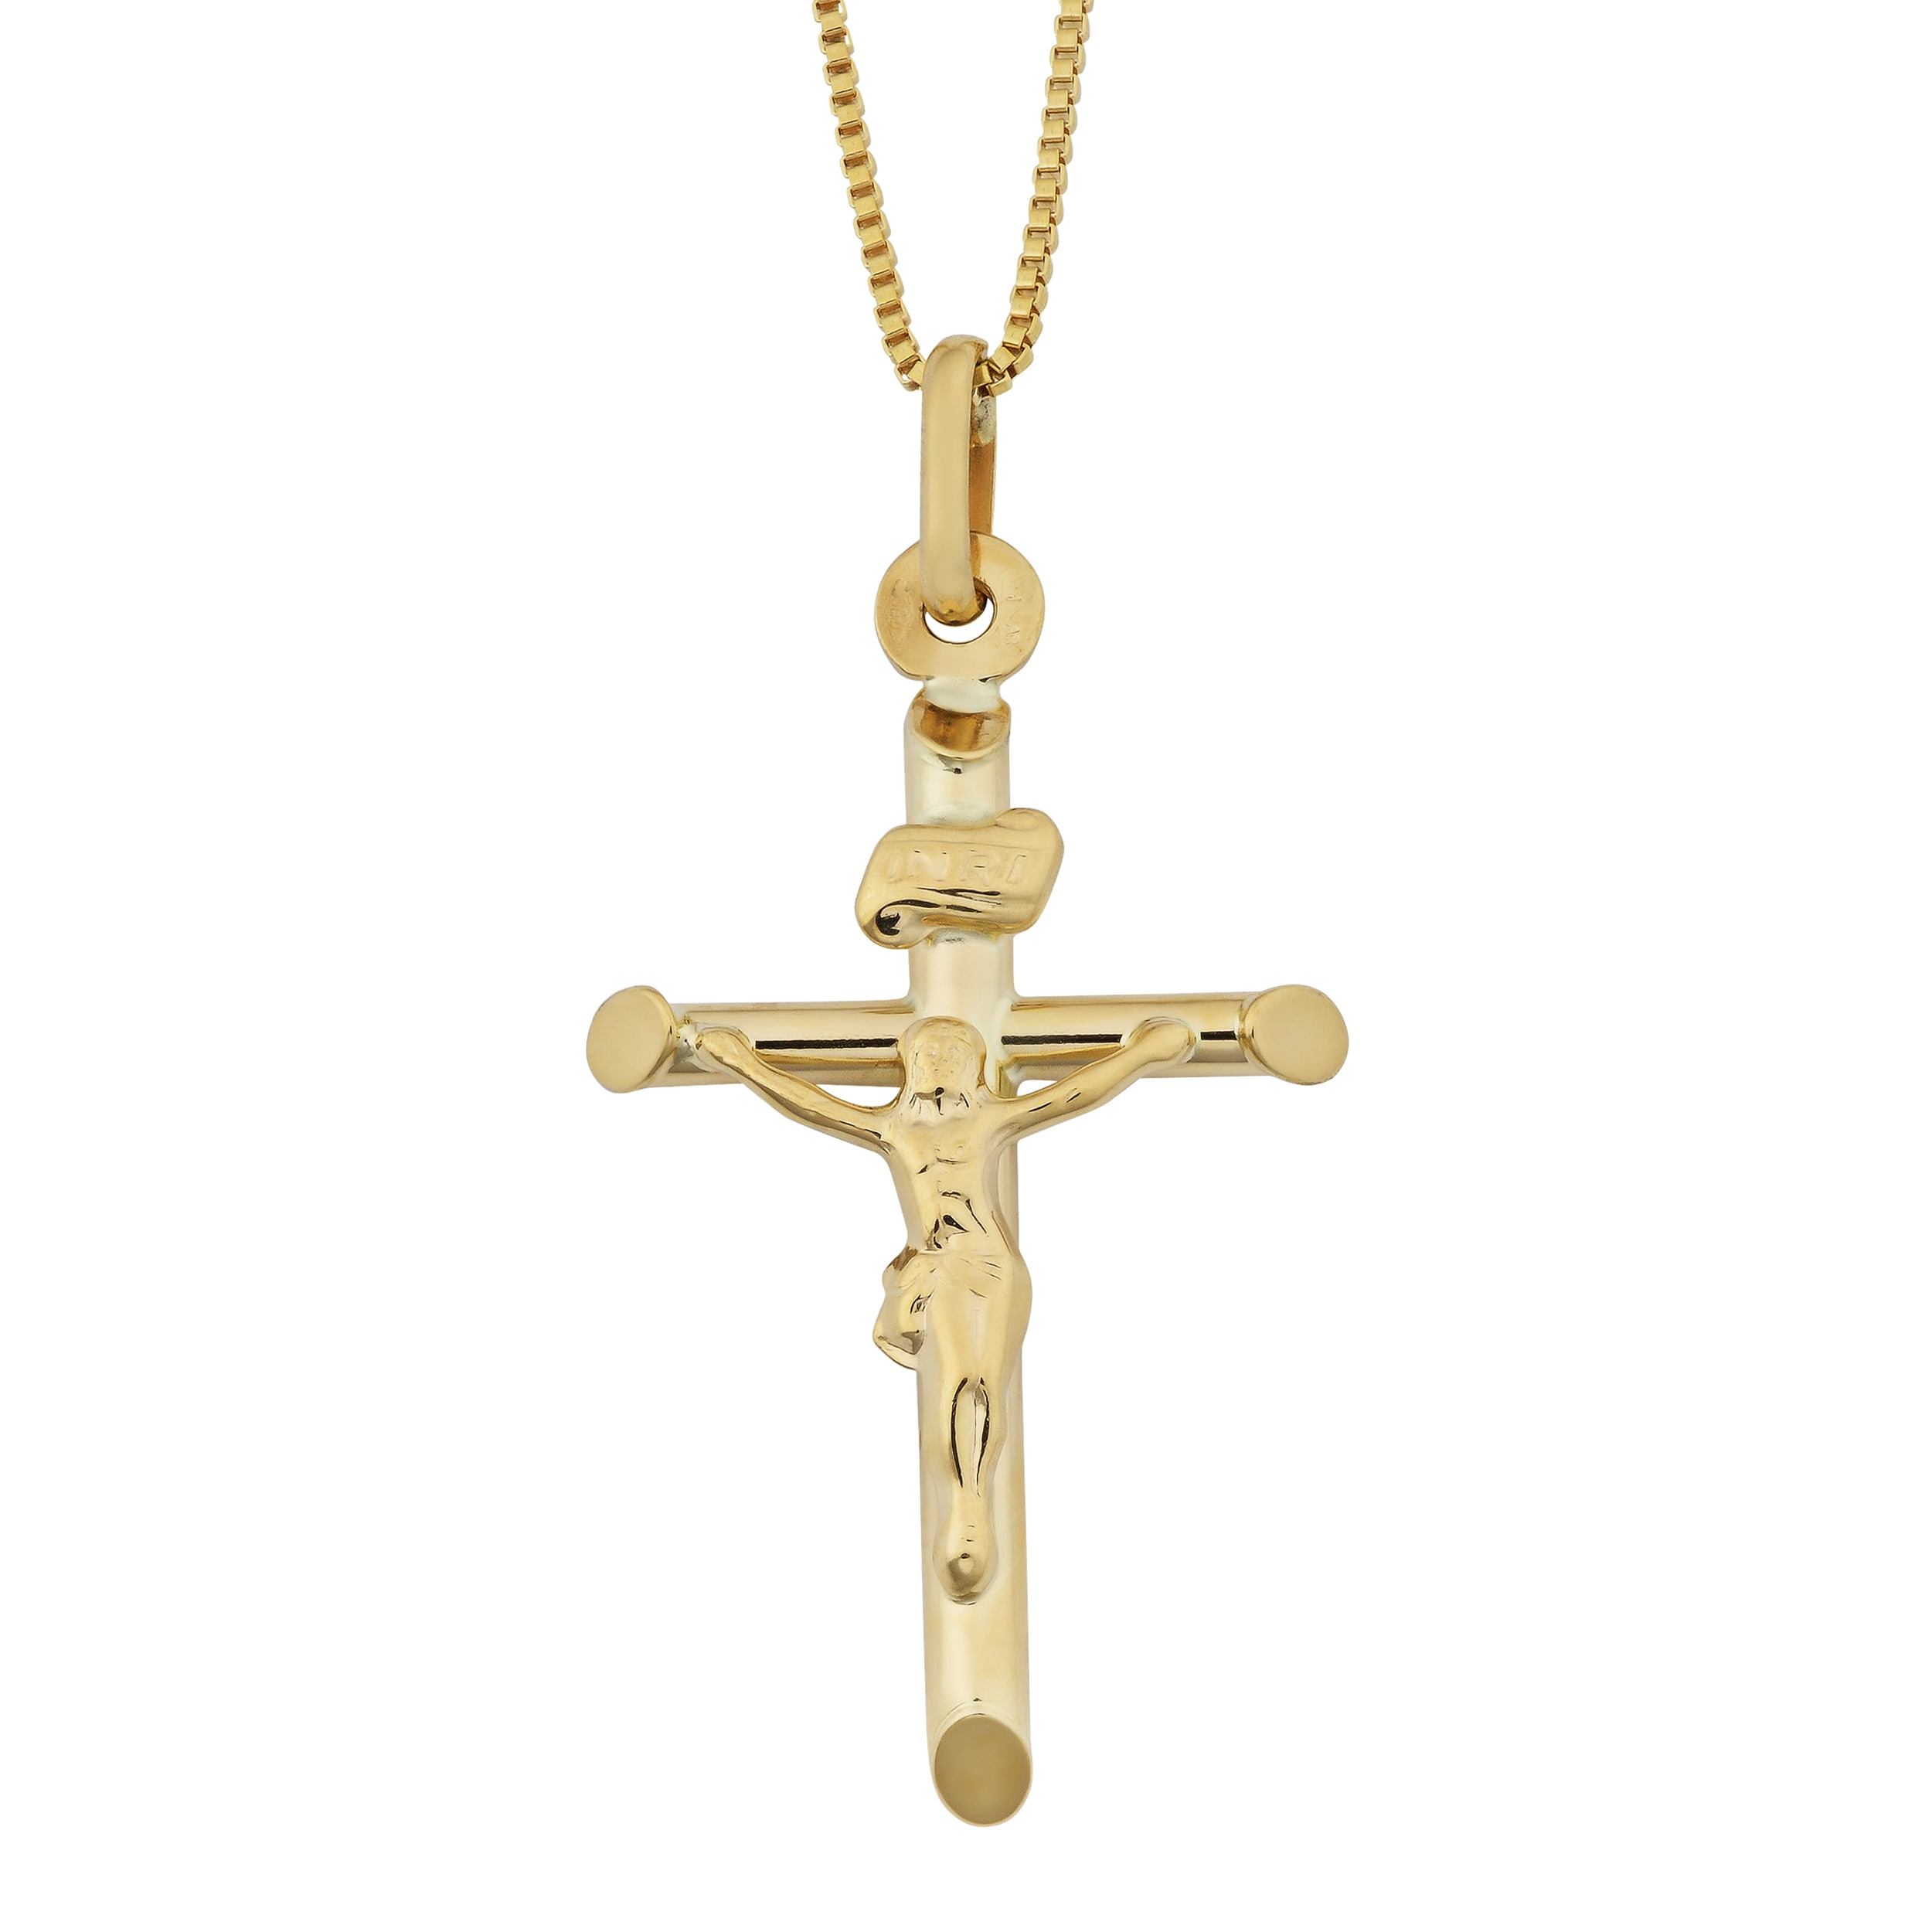 pendants necklaces id wid hei peretti in crucifix fit ed wide silver pendant mm constrain sterling elsa jewelry fmt